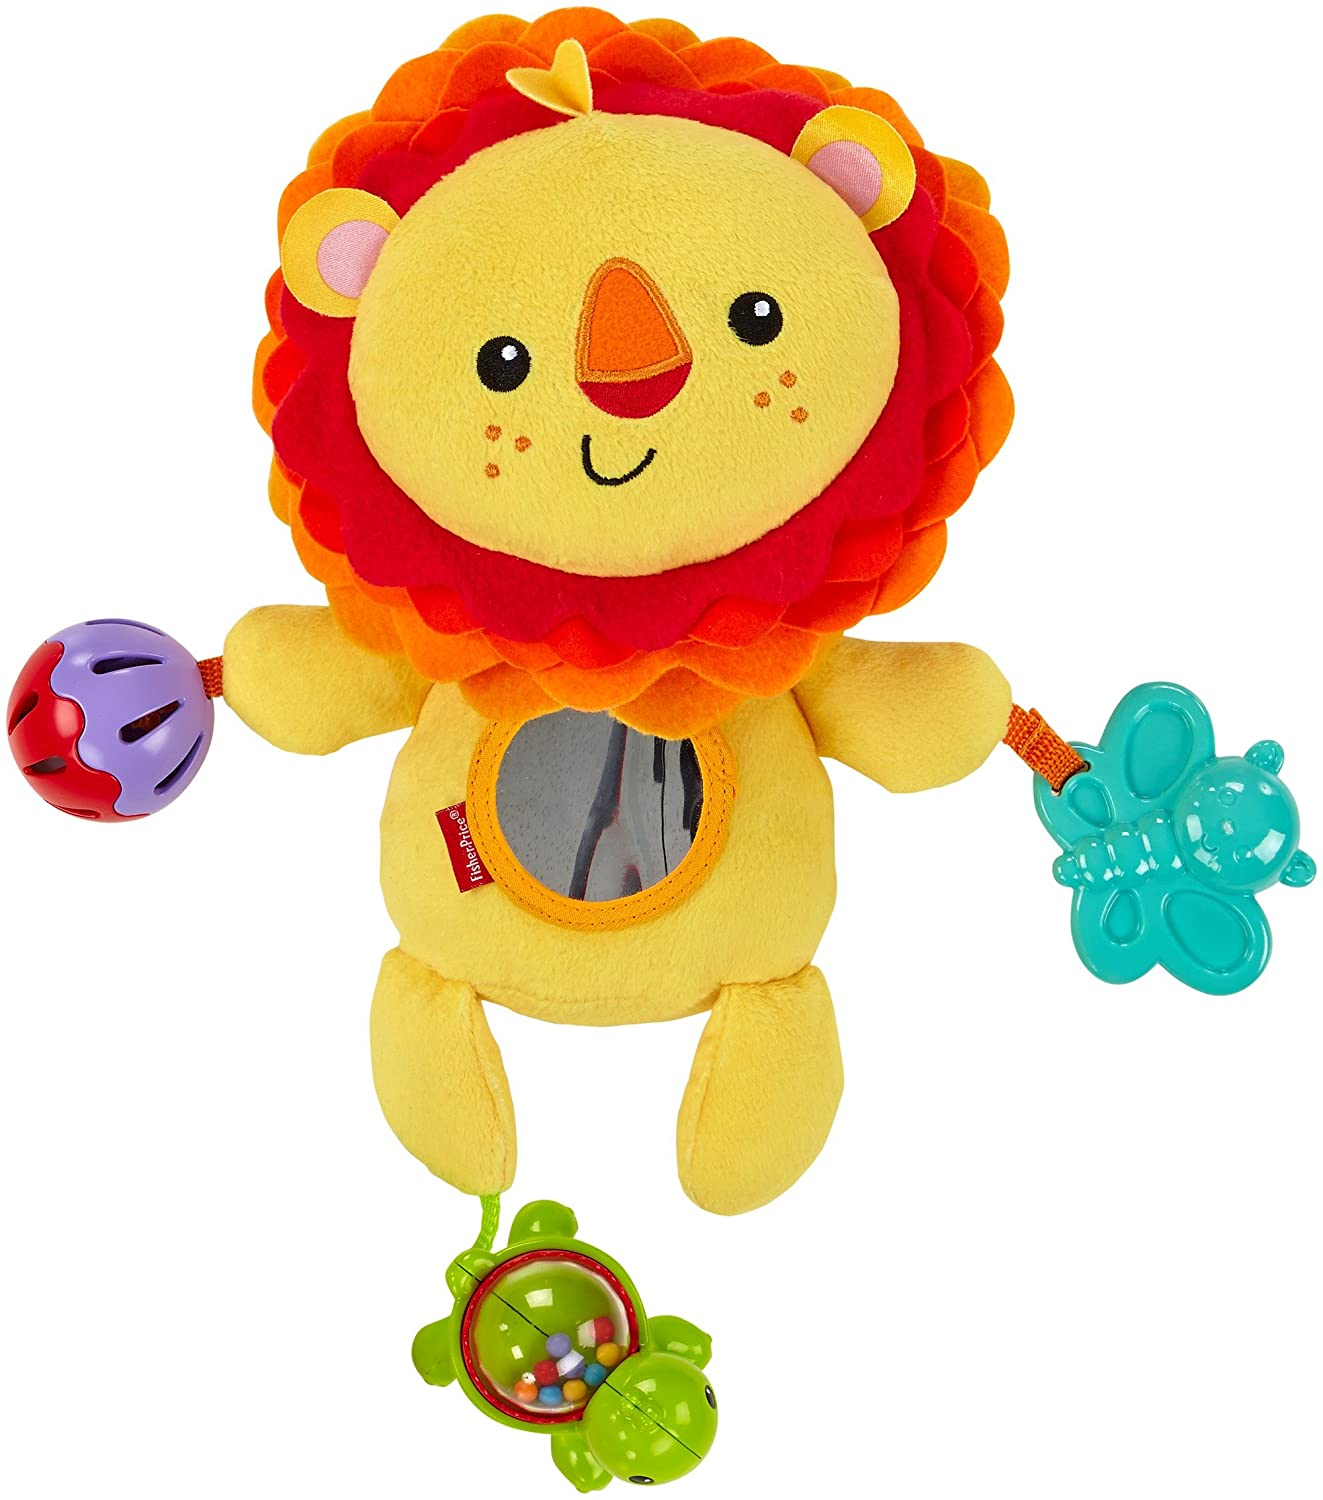 Fisher Price Activity Lion Amazon Toys & Games